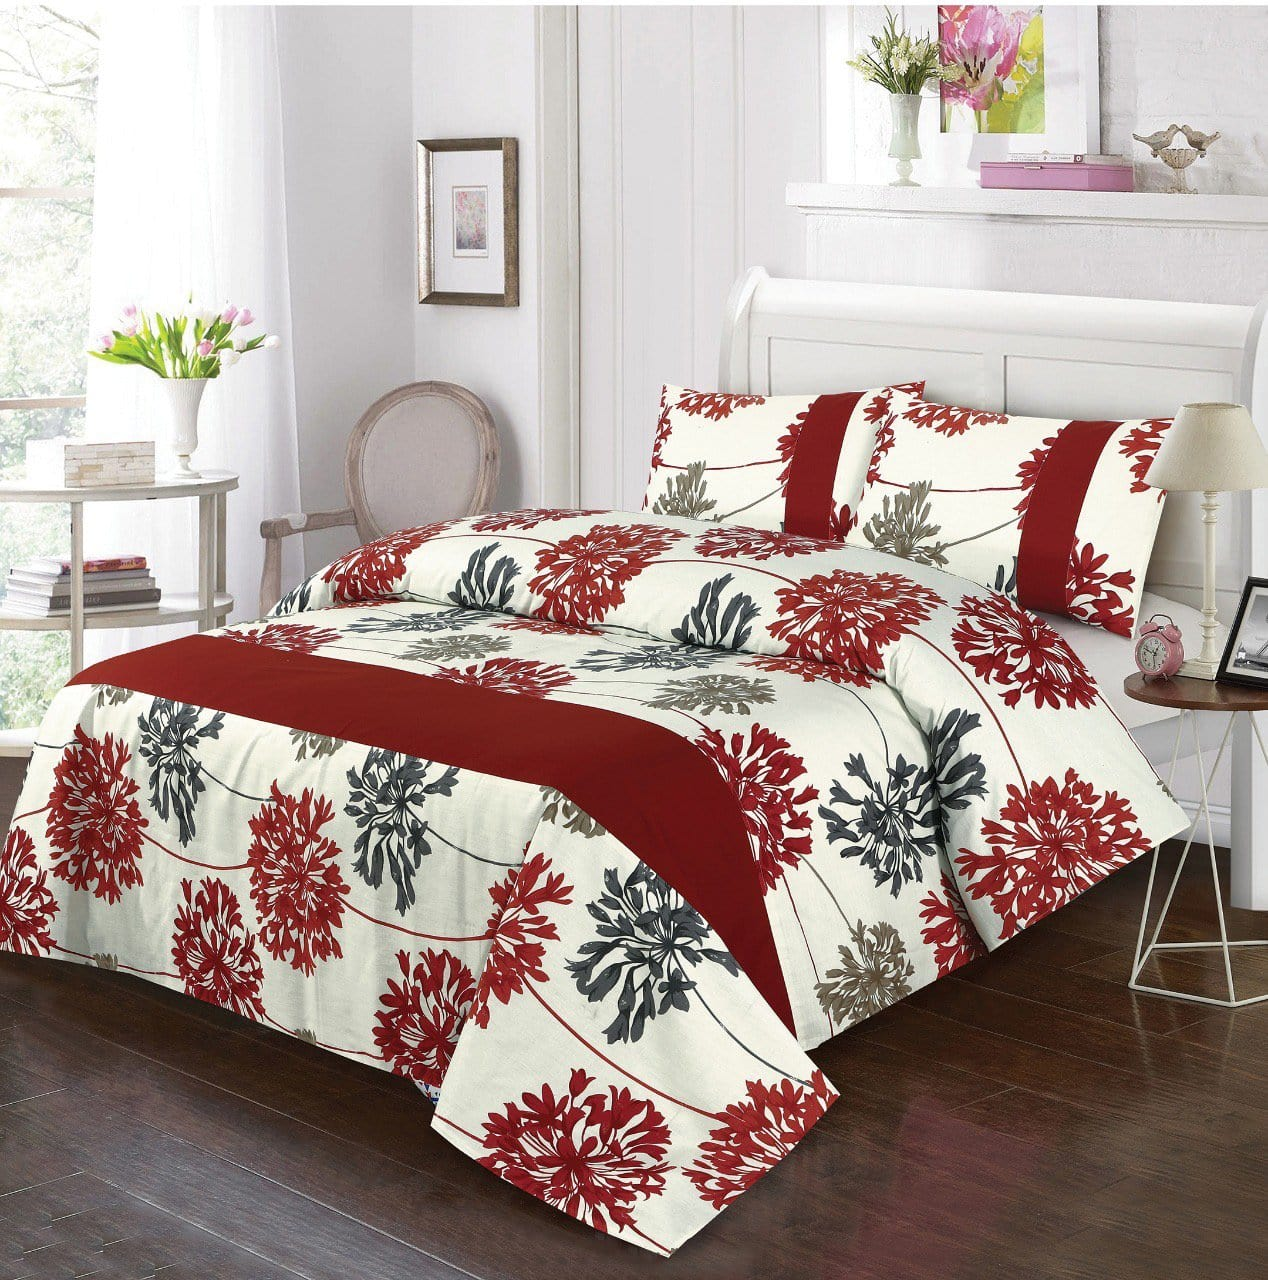 Grace D267-Cotton duck king size  (Patch work) Bedsheet with 2 pillow covers.